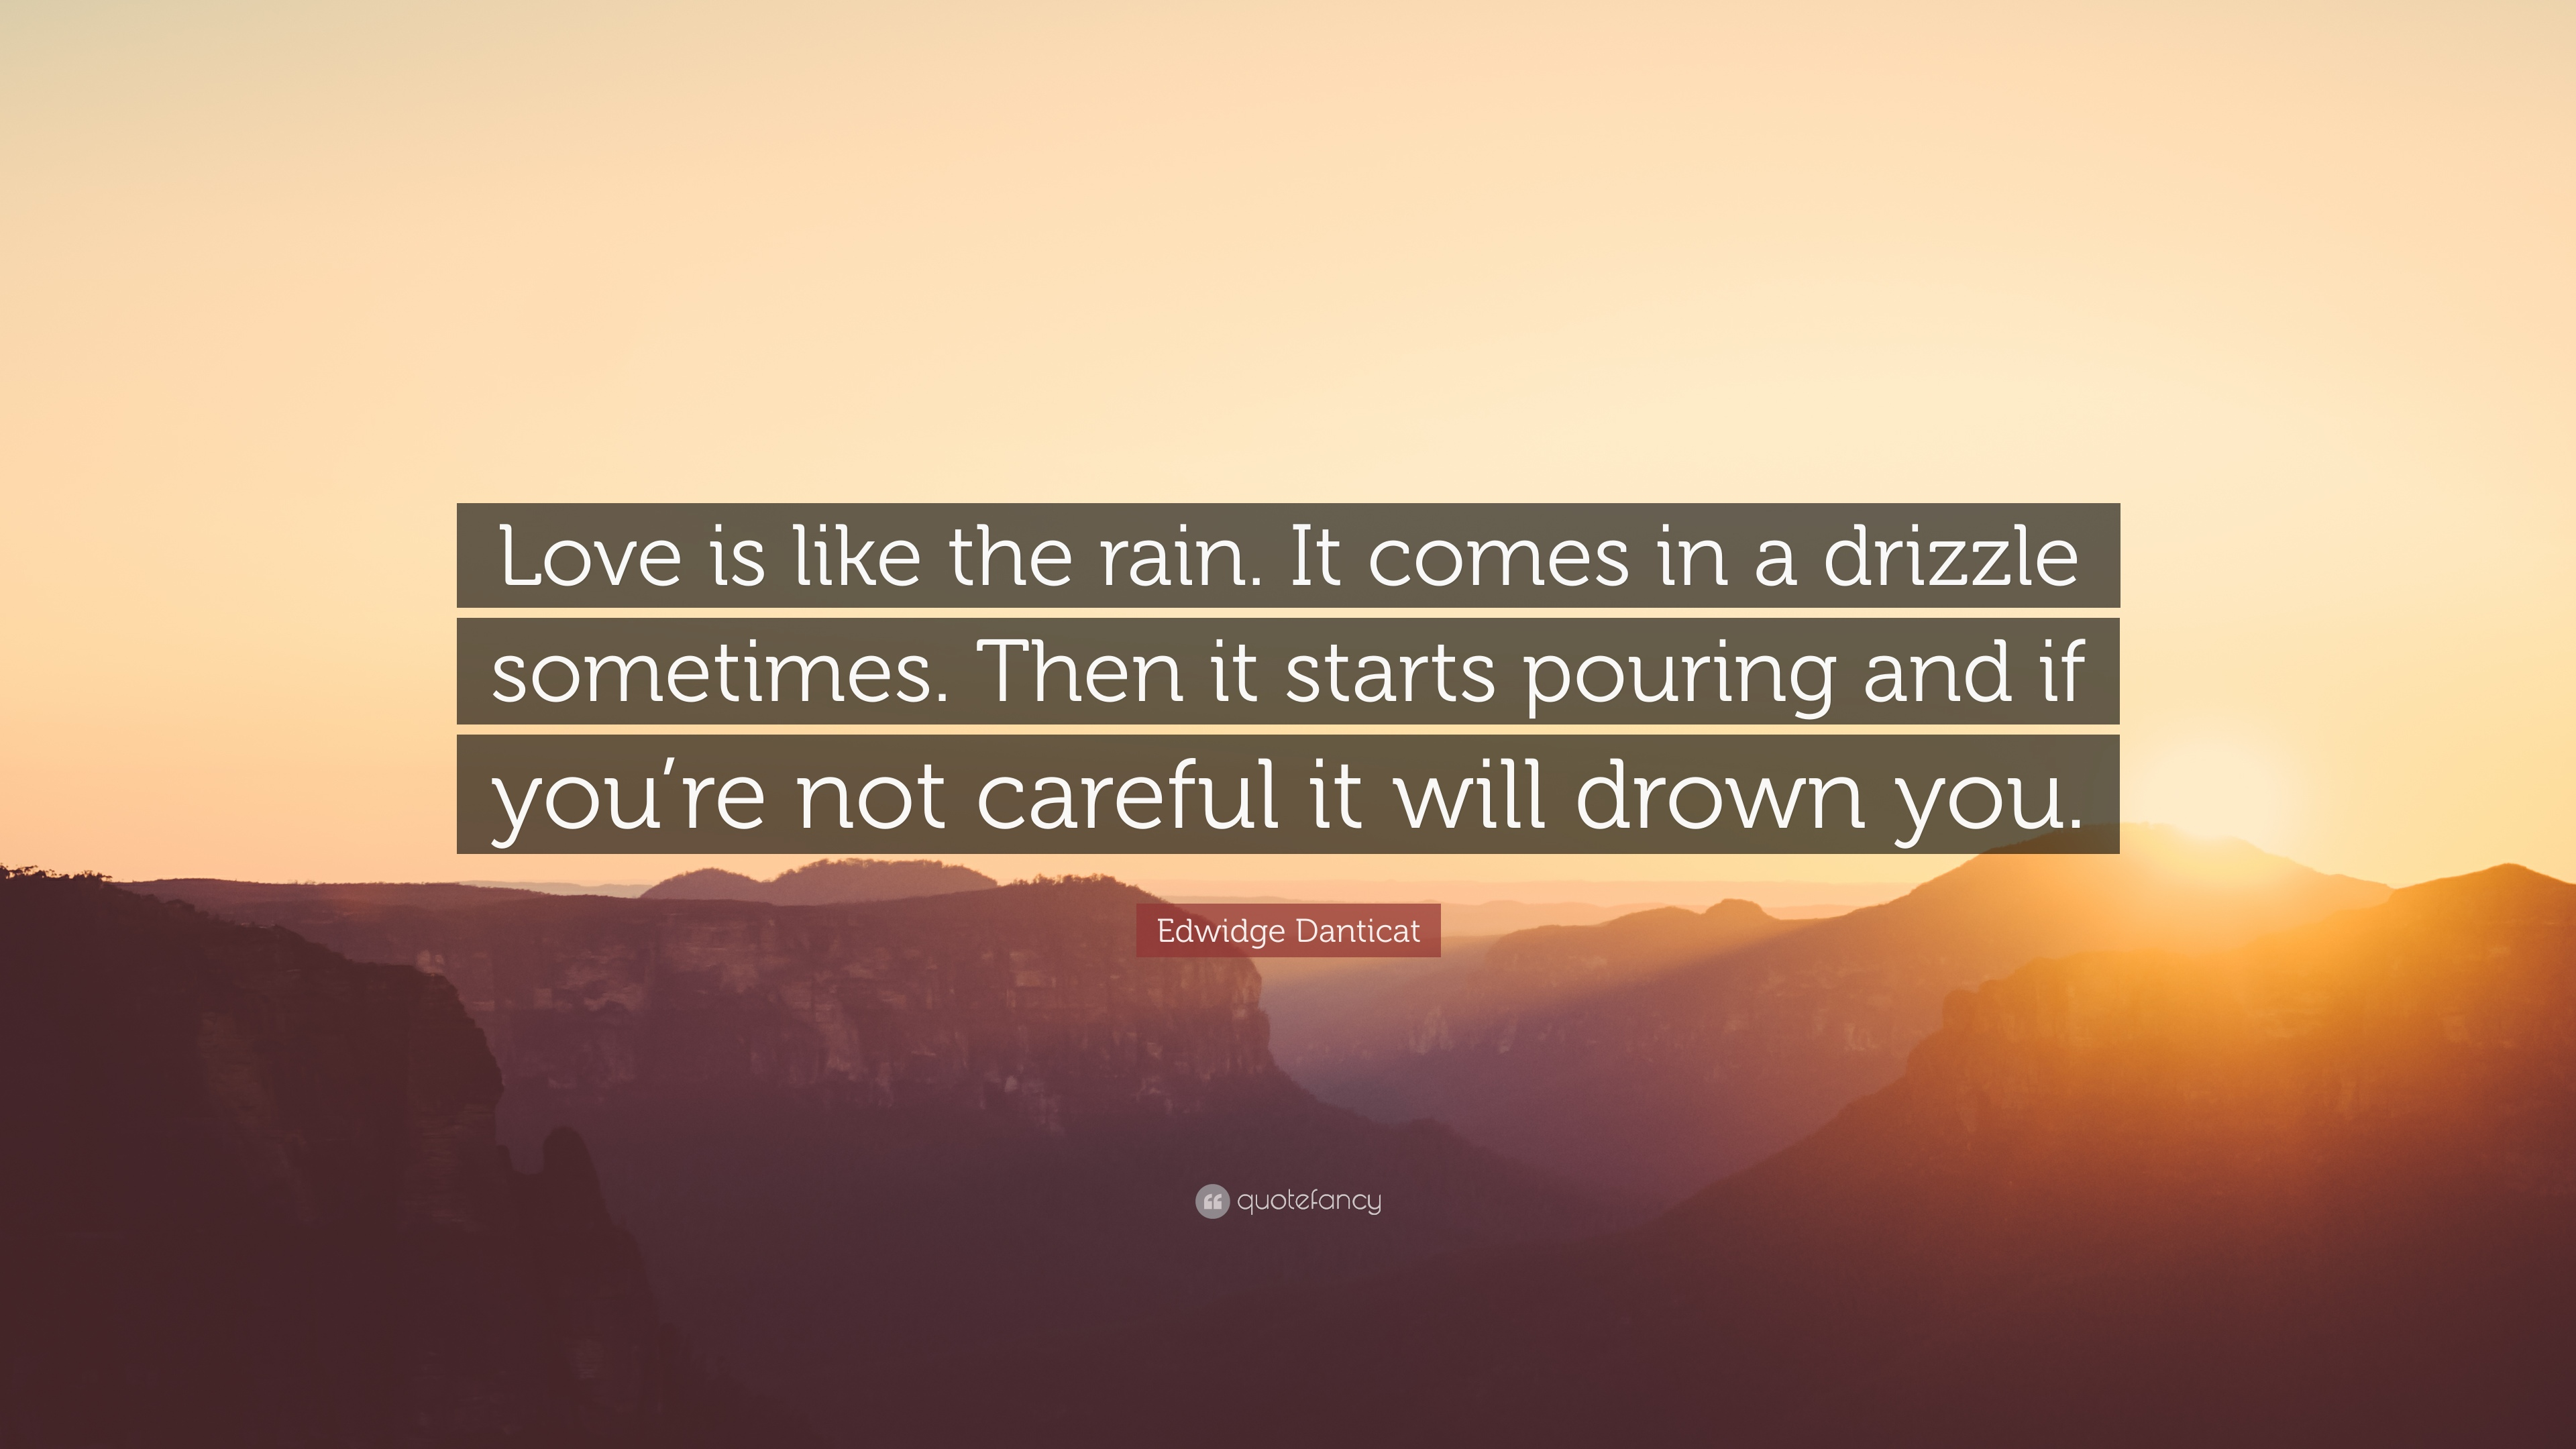 Edwidge Danticat Quote: U201cLove Is Like The Rain. It Comes In A Drizzle